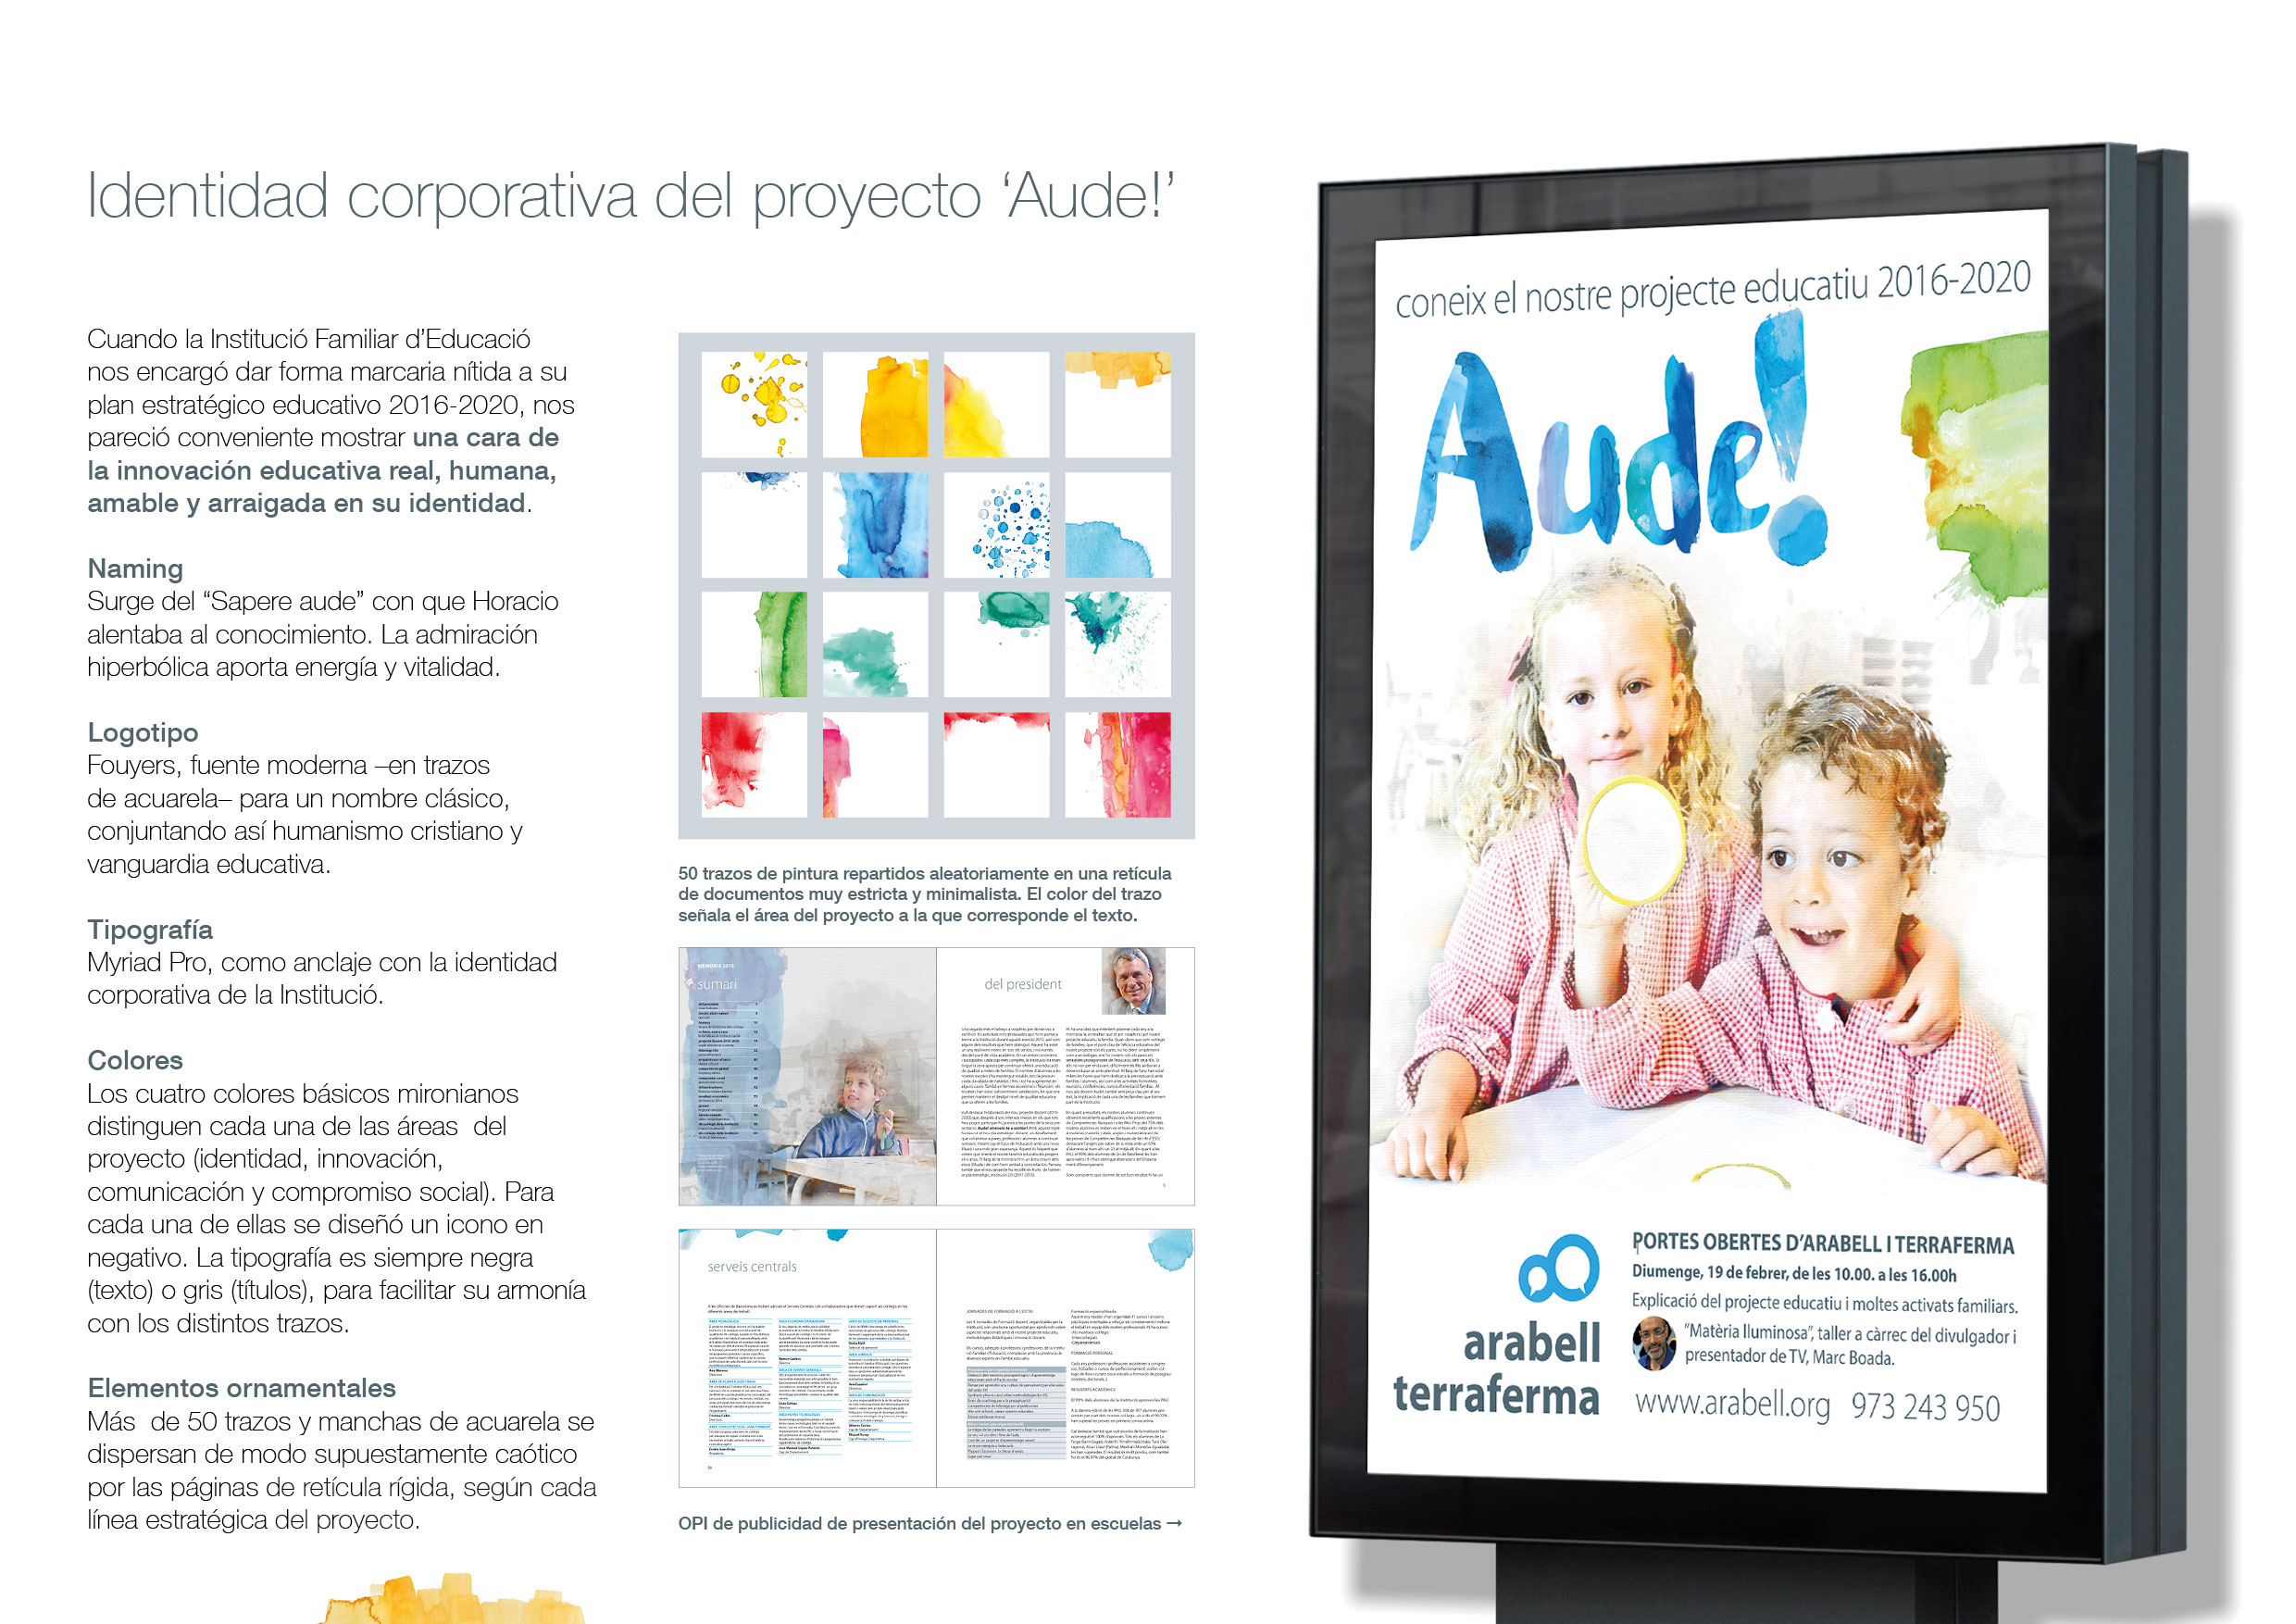 Aude! by Miquel Rossy - Creative Work